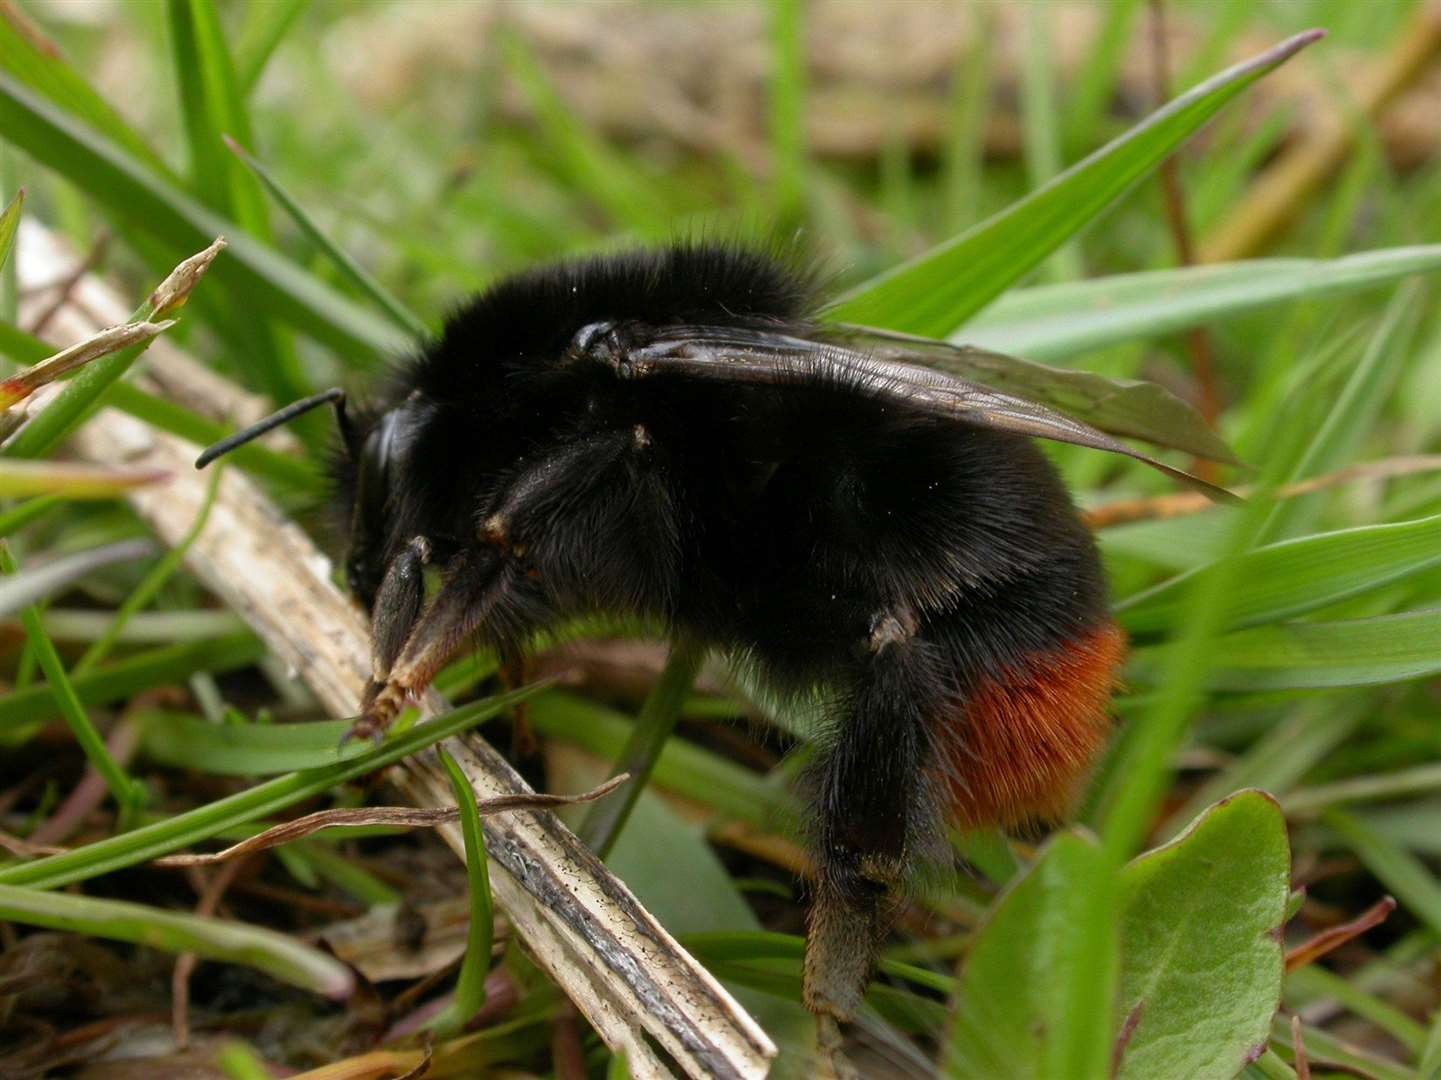 A red-tailed bumblebee. Image by Philip Precey.